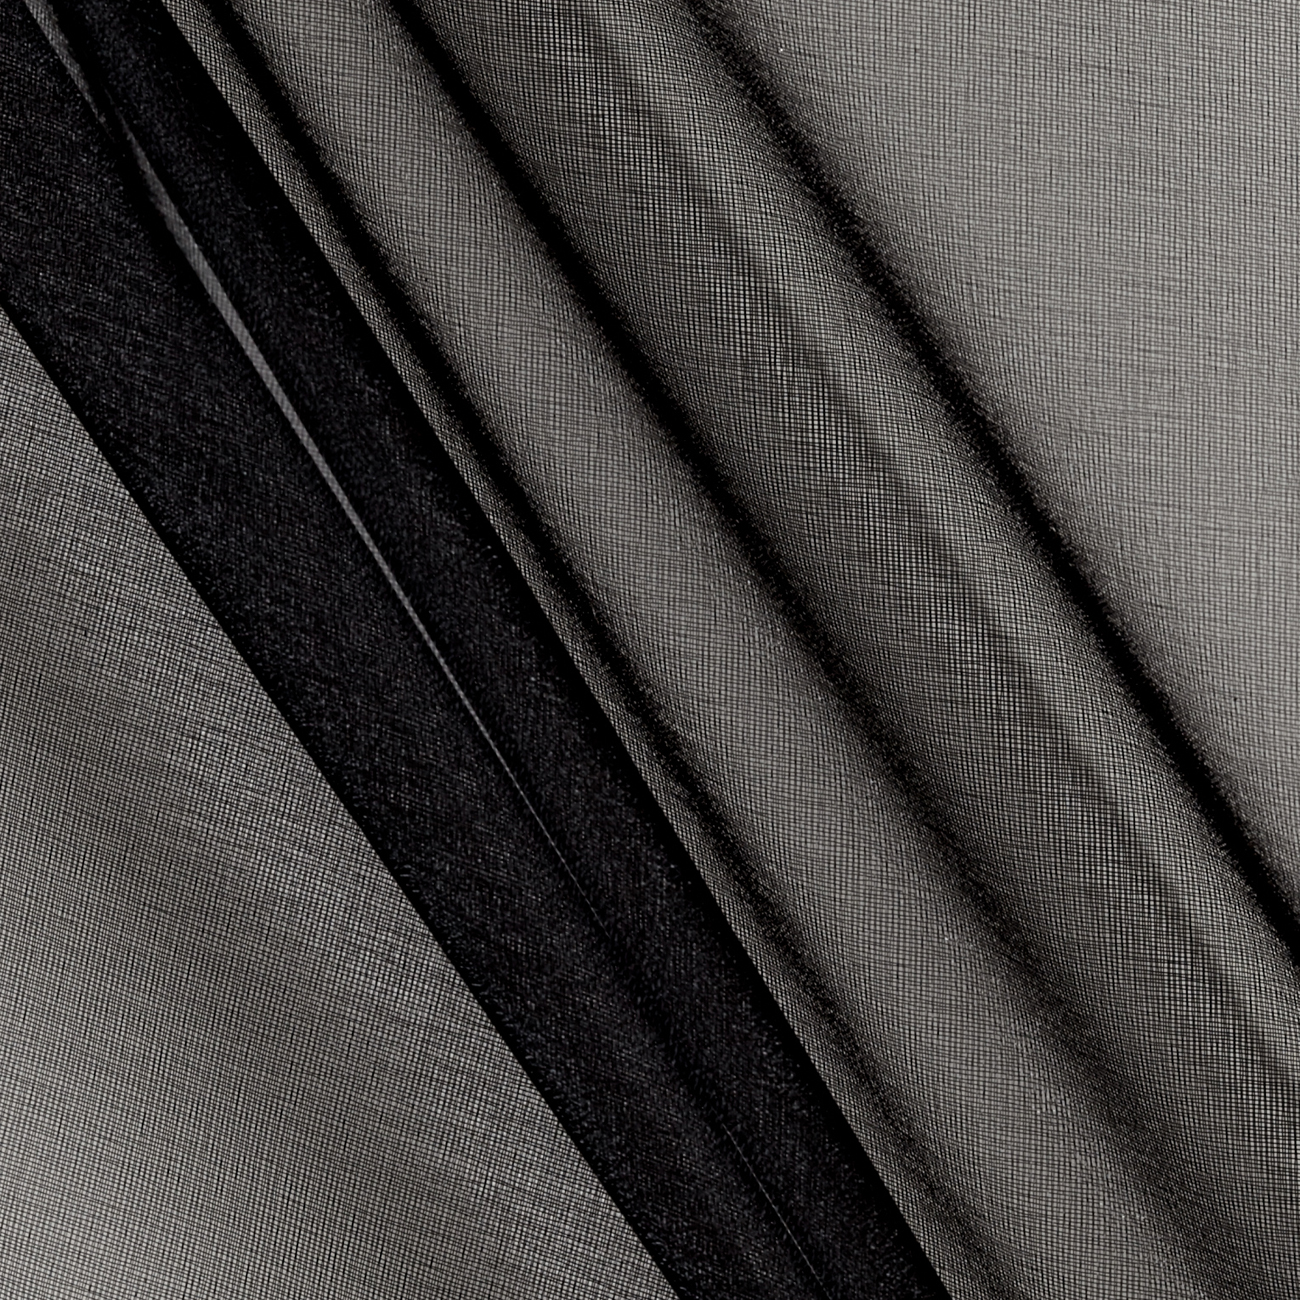 Organdy Organza Black Fabric by Textile Creations in USA